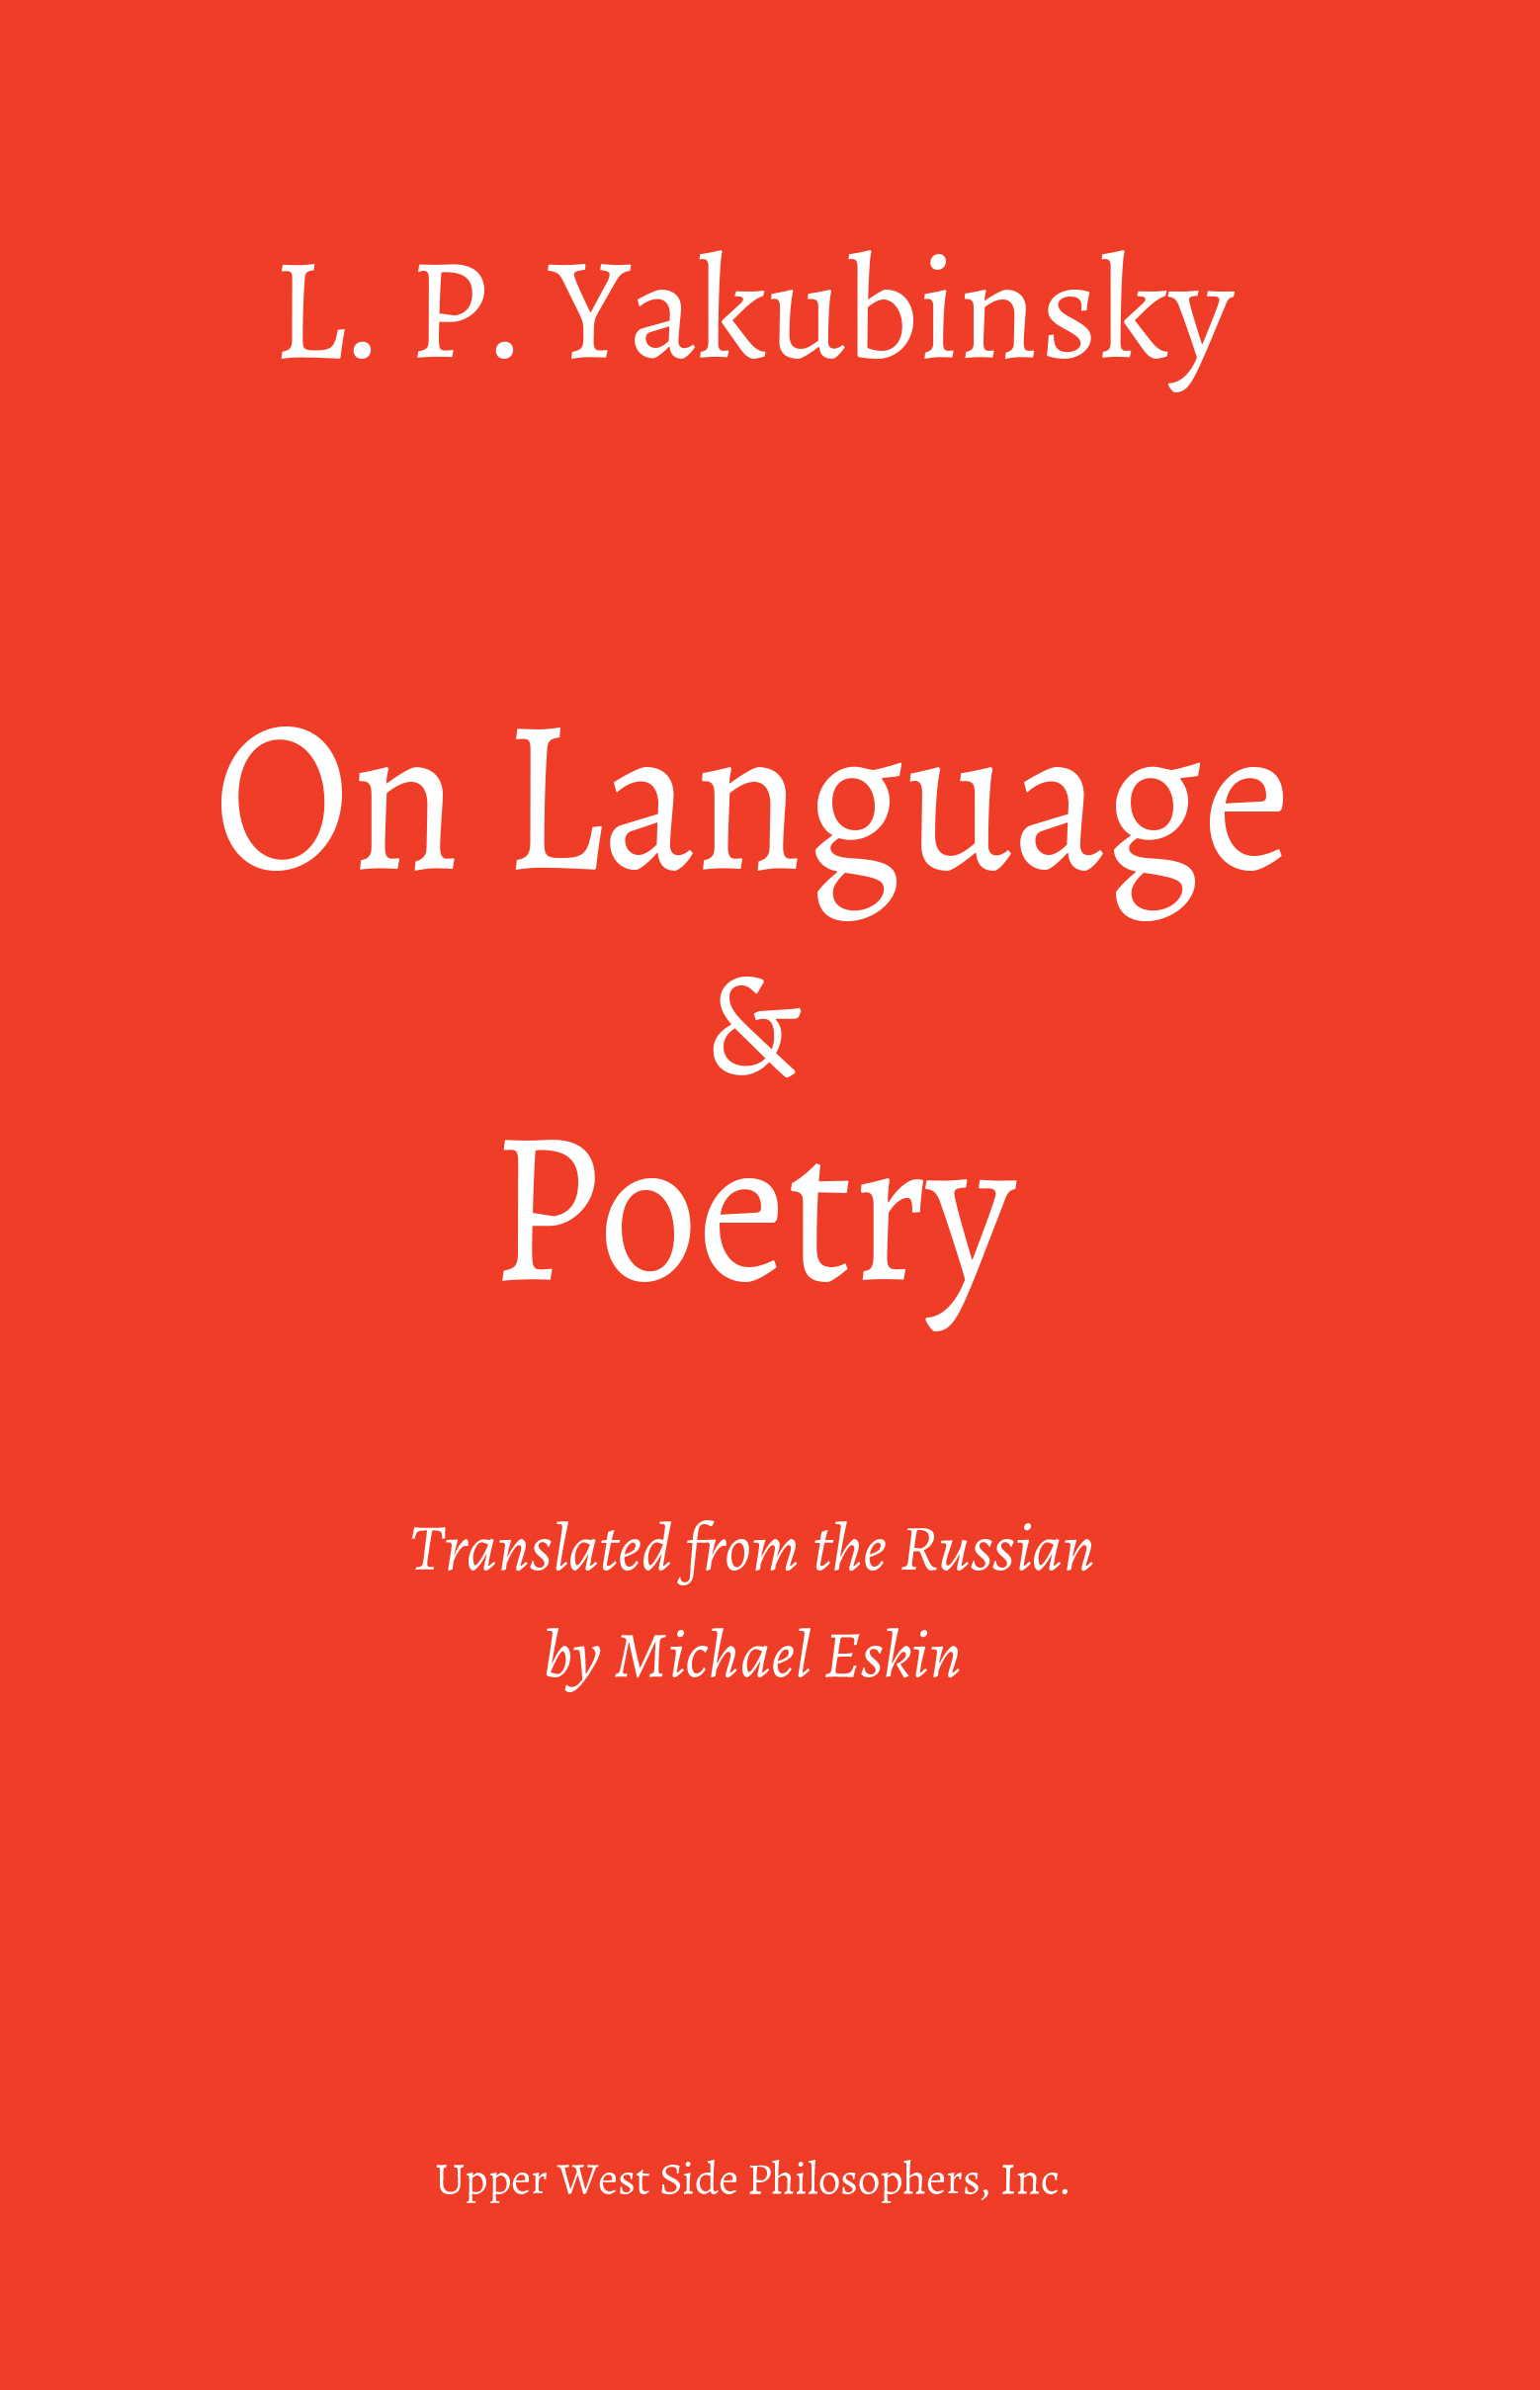 On Language and Poetry: Three Essays